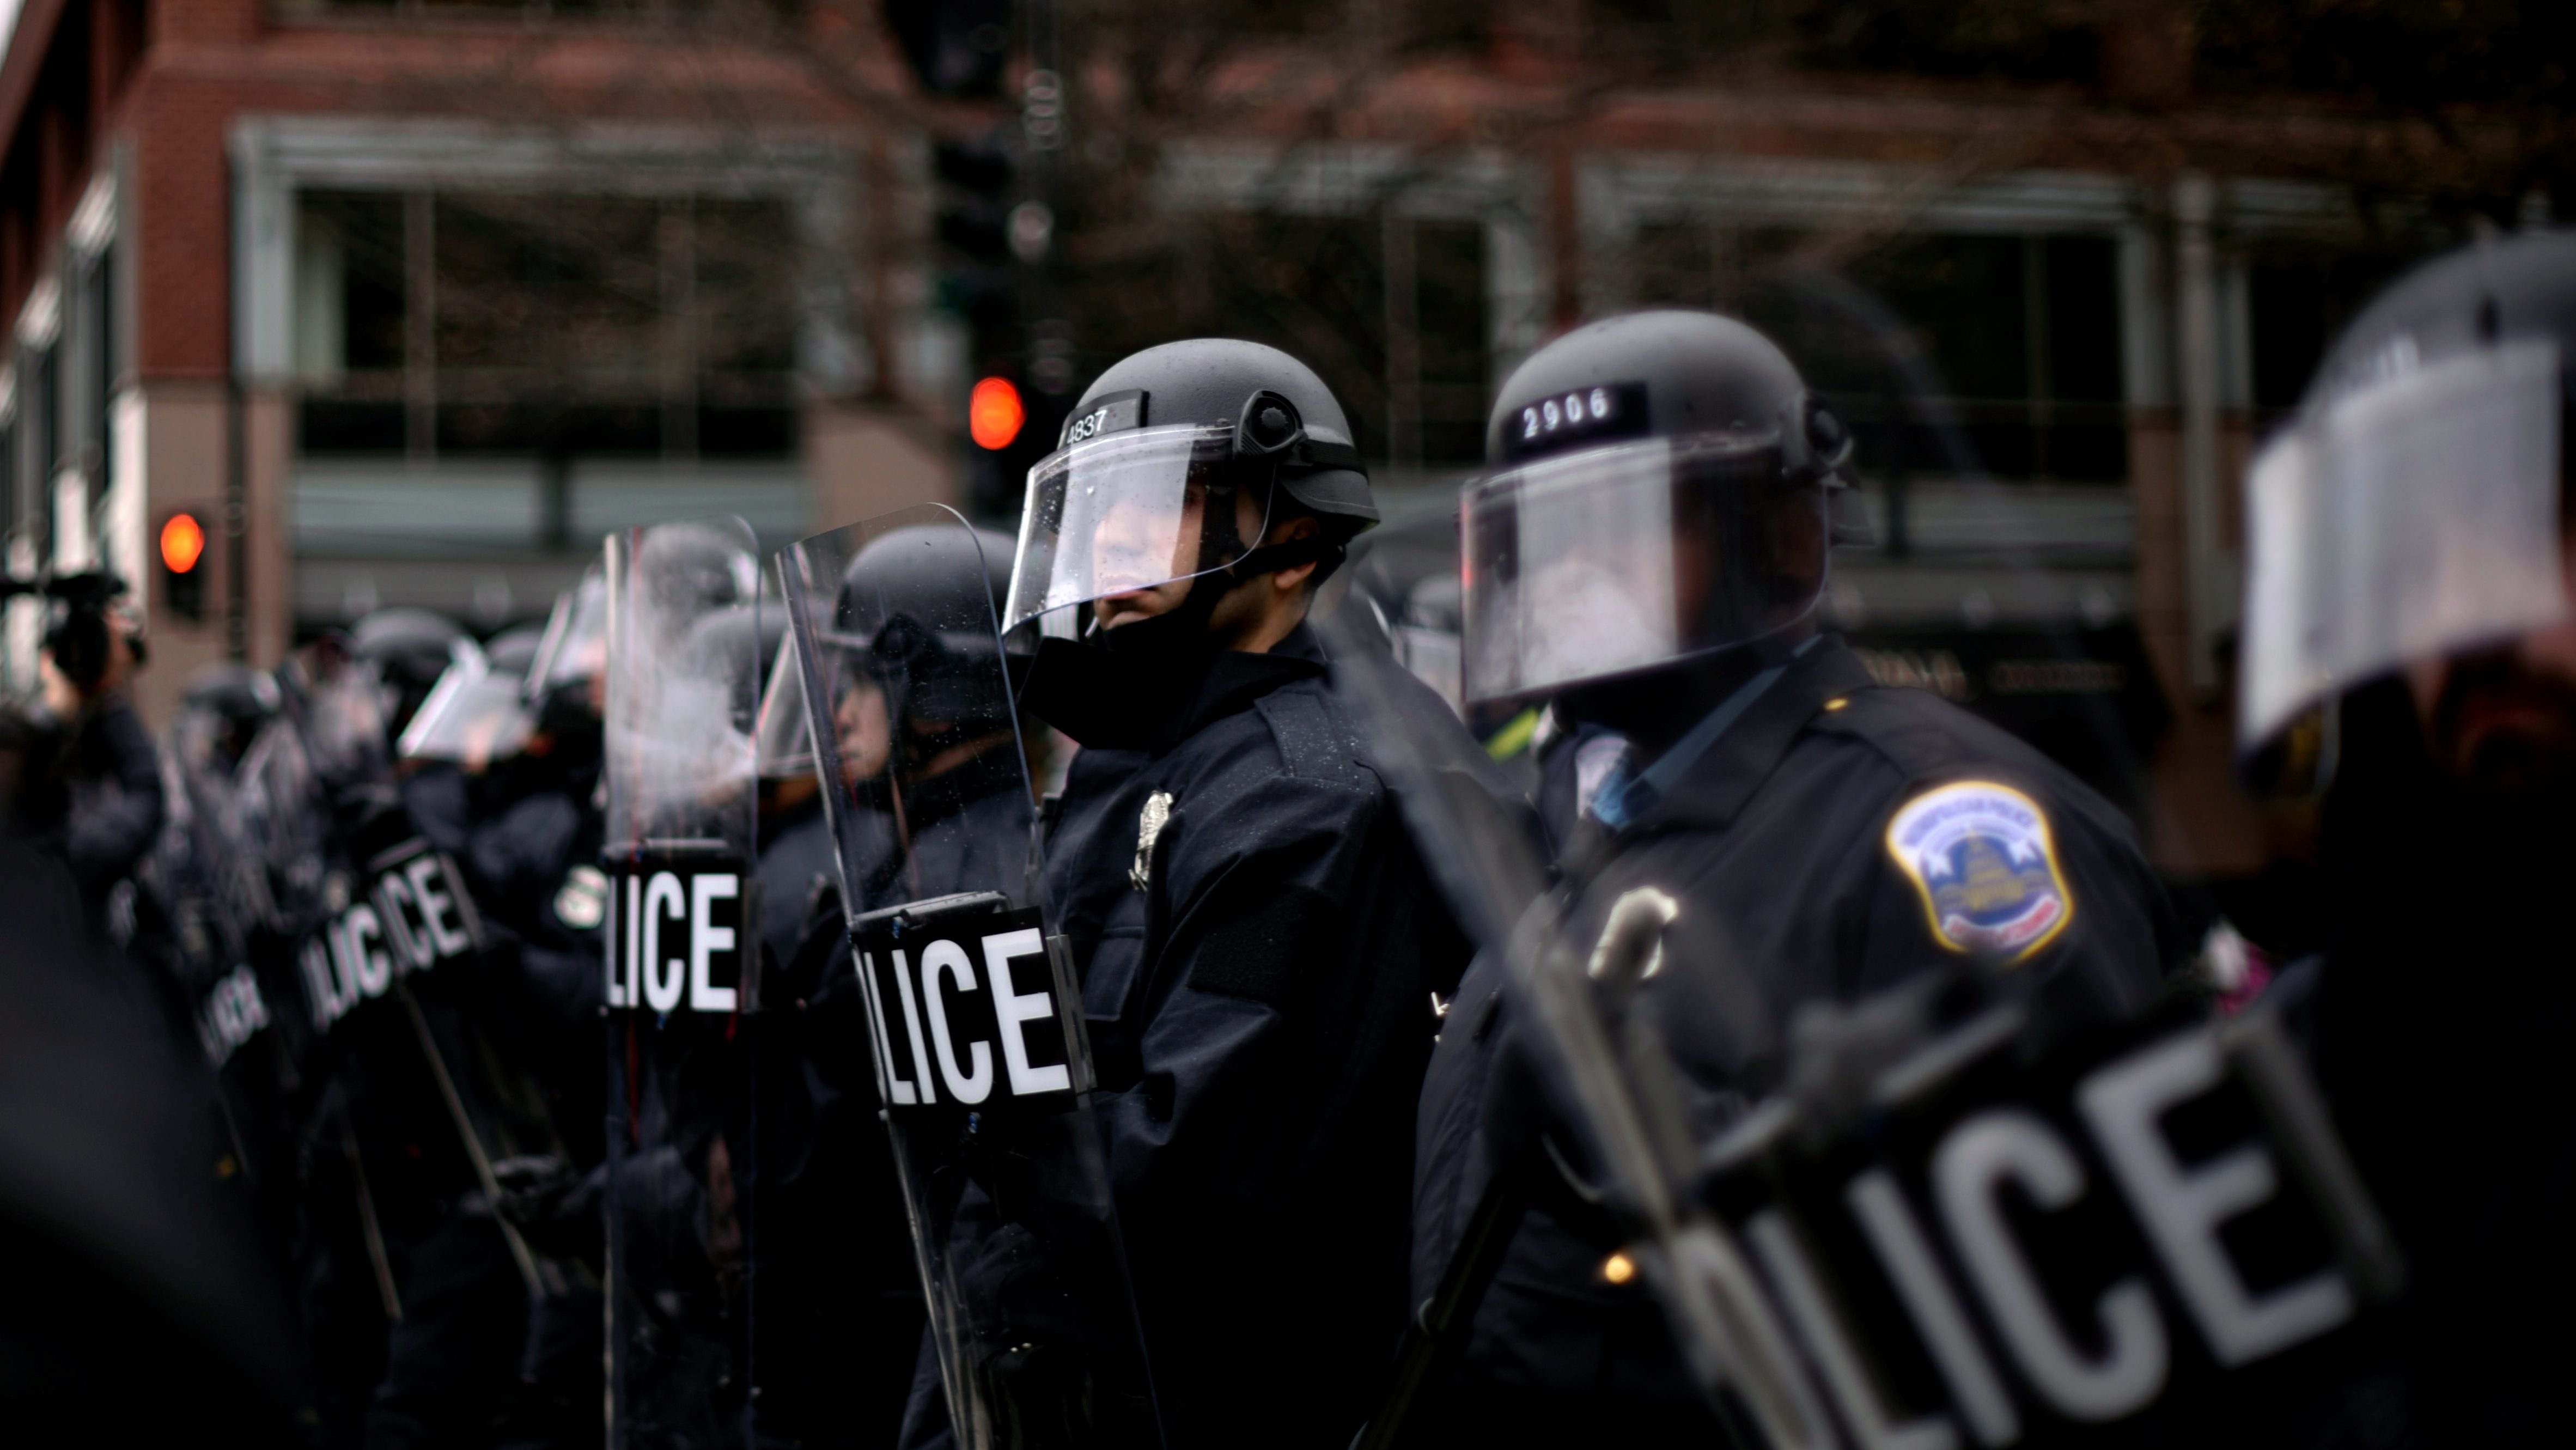 DC riot police form a line across K Street Northwest at 13th Street as protesters react to the swearing in of U.S. President Donald Trump in downtown Washington, U.S., January 20, 2017. REUTERS/James Lawler Duggan - RTSWL1W